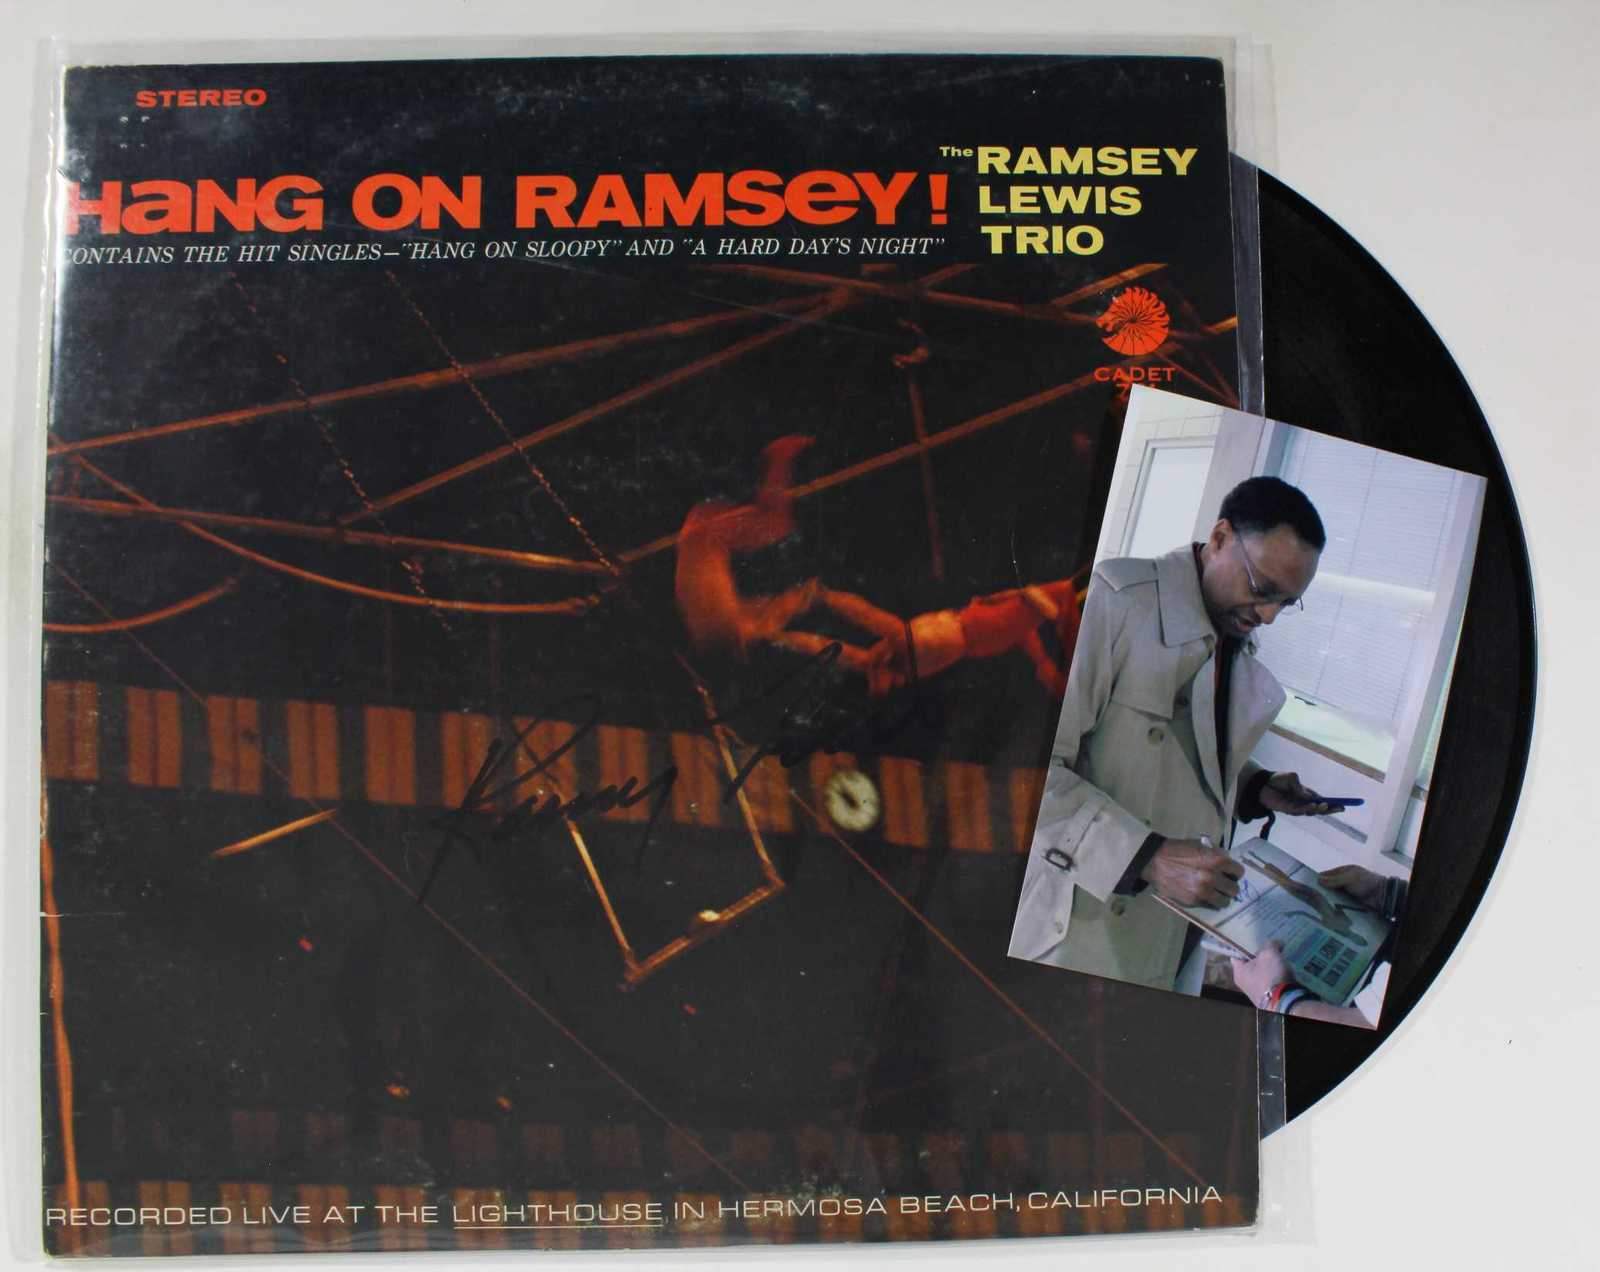 Primary image for Ramsey Lewis Signed Autographed Record Album w/ Proof Photo